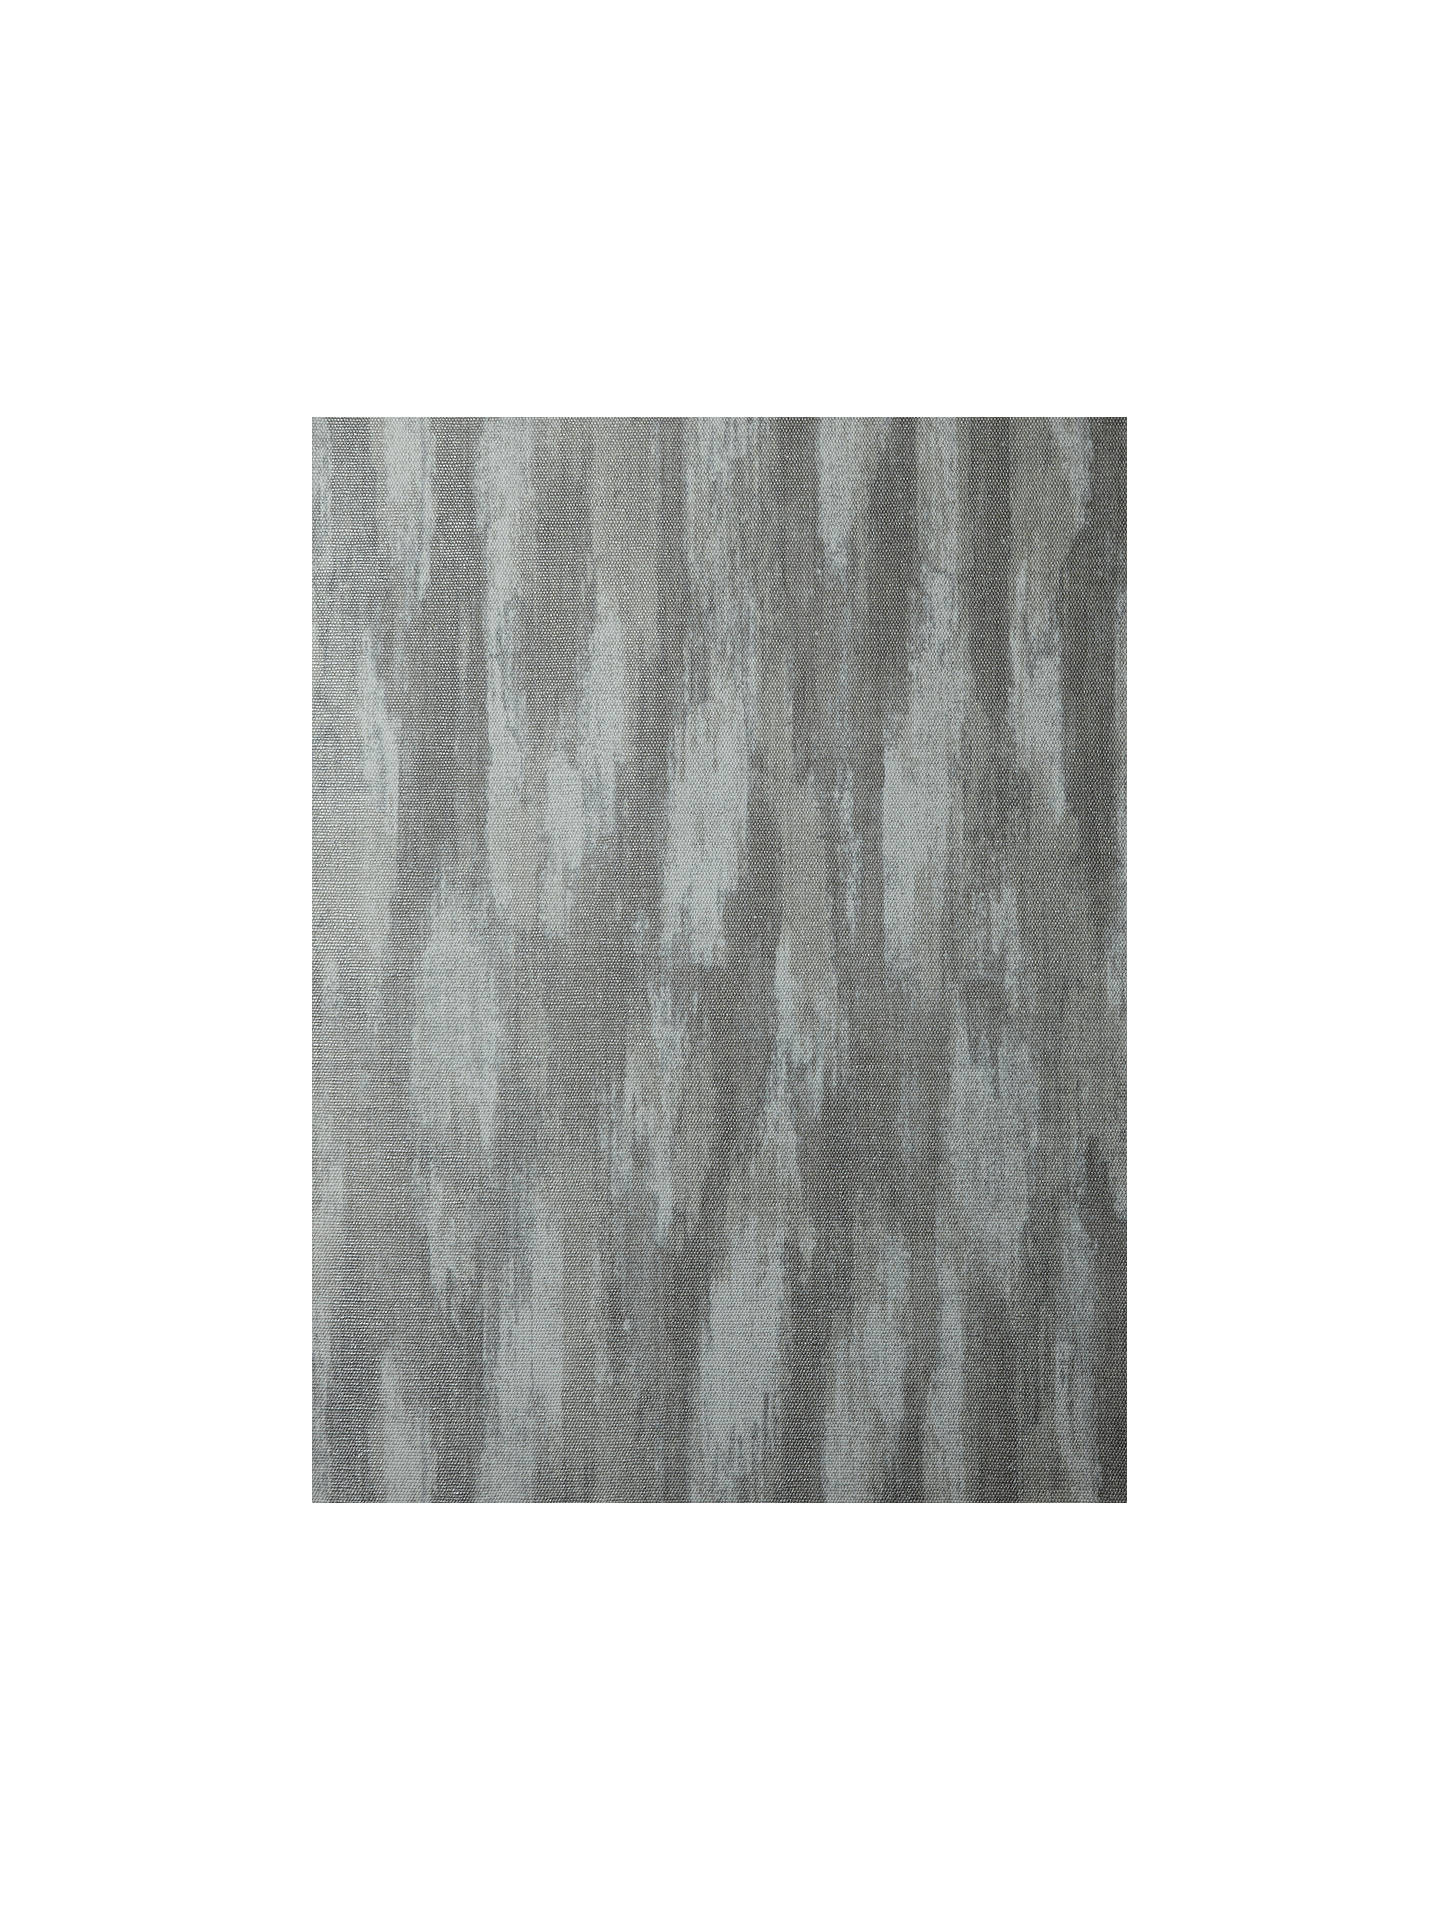 Buy Prestigious Textiles Oxide Vinyl Wallpaper, Granite 1653/920 Online at johnlewis.com